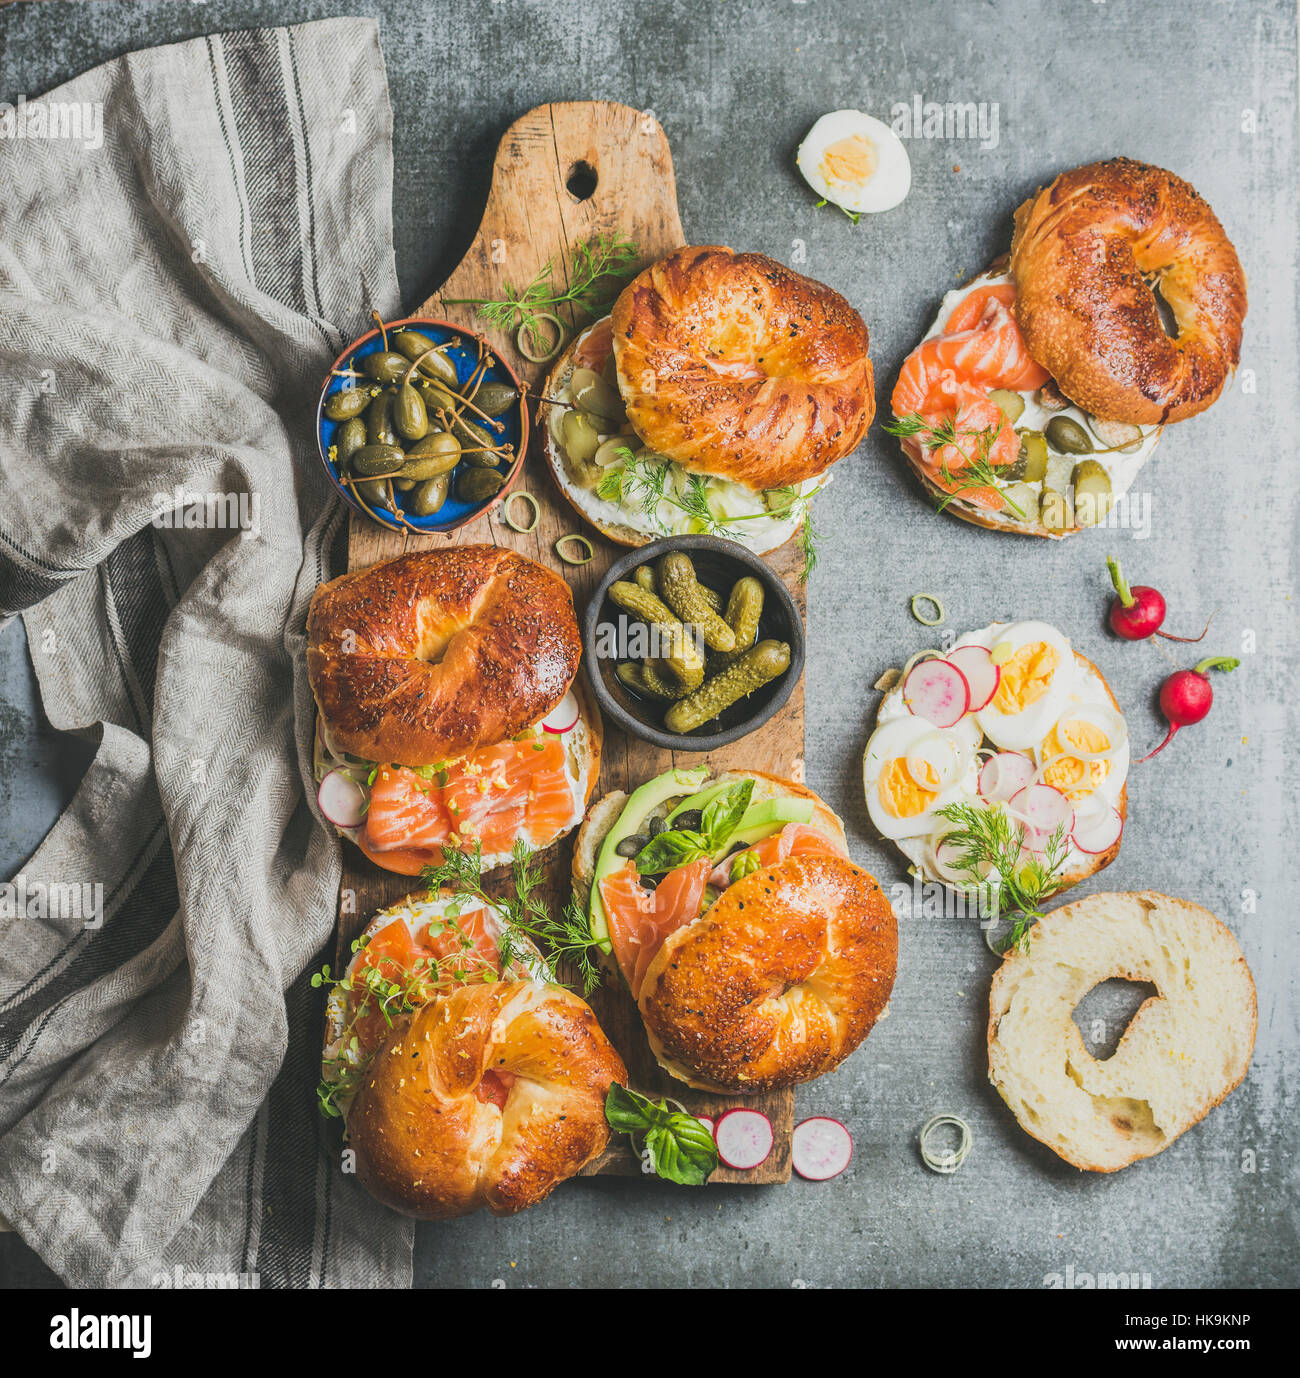 Variety of bagels with smoked salmon, eggs, radish, avocado, cucumber, greens and cream cheese for breakfast, healthy - Stock Image